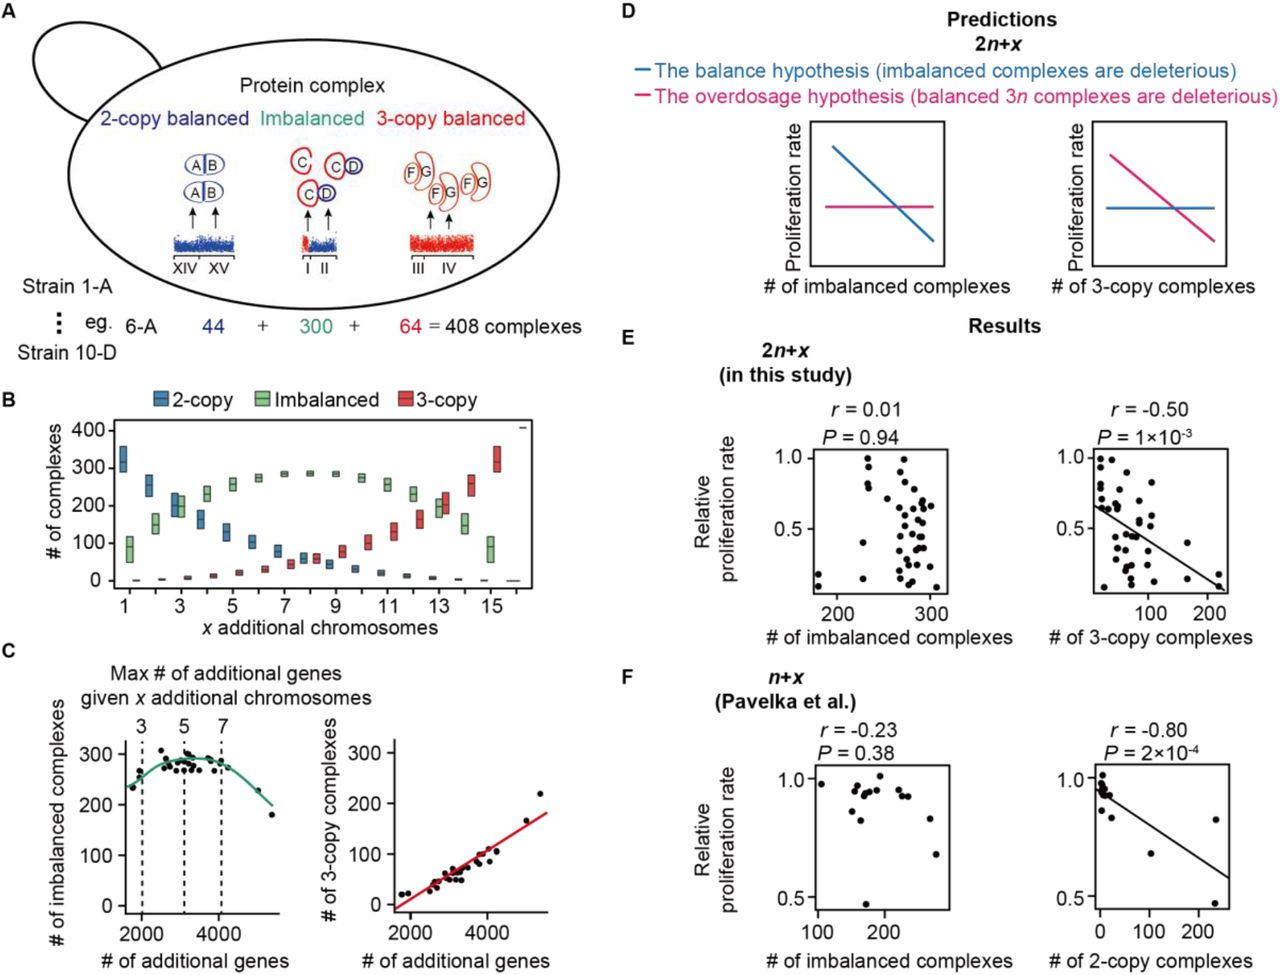 Overdosage of balanced protein complexes reduces proliferation rate